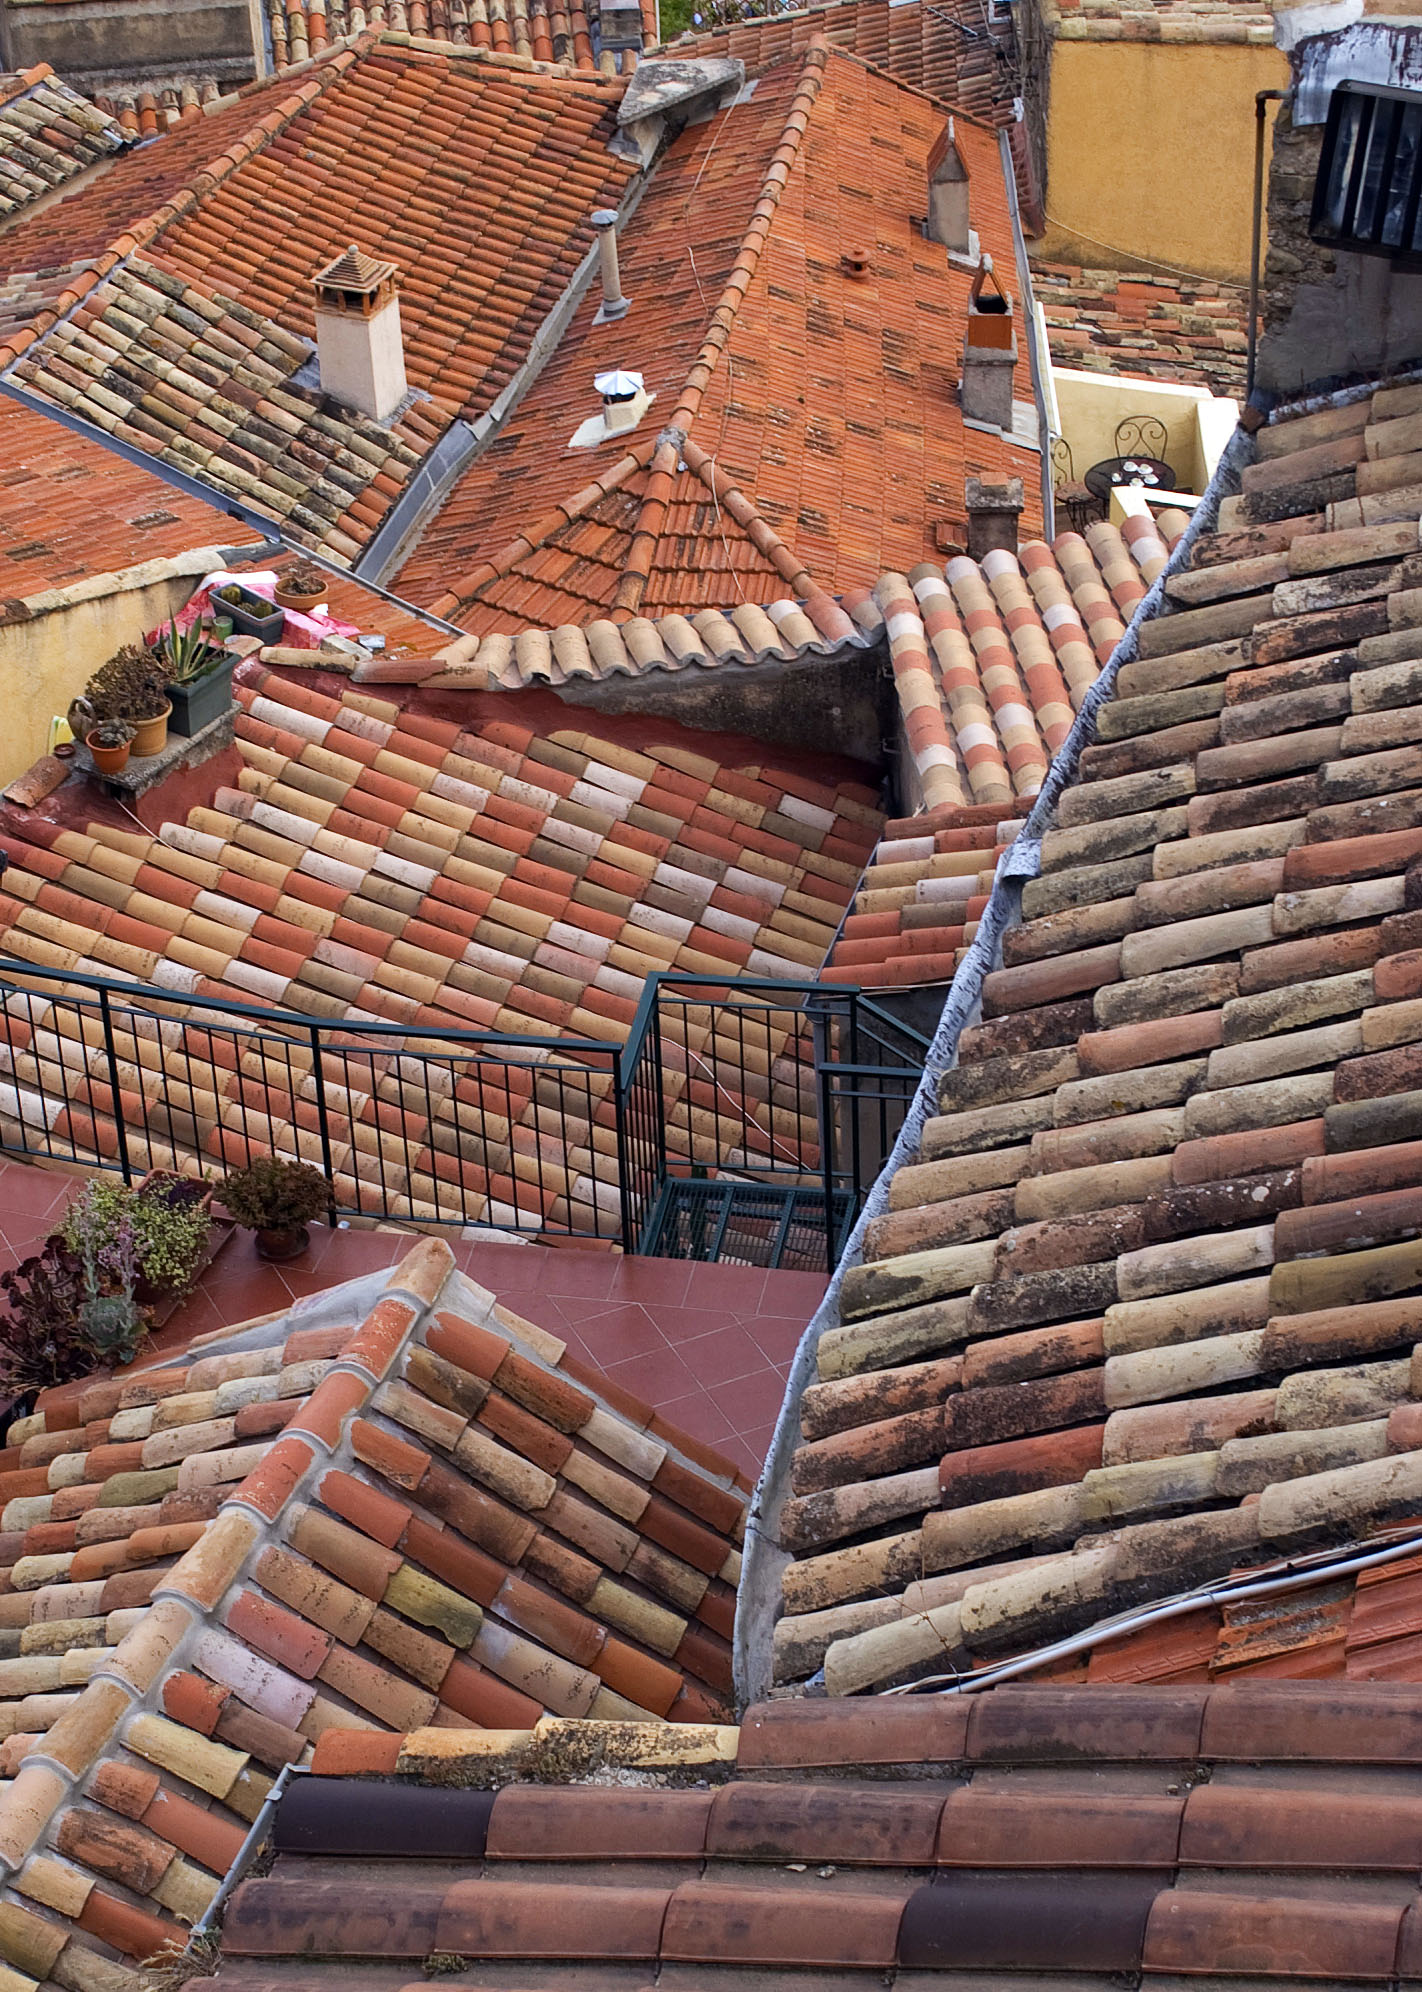 The roofs, perched village of Roquebrune © Javier B - licence [CC BY 3.0] from Wikimedia Commons